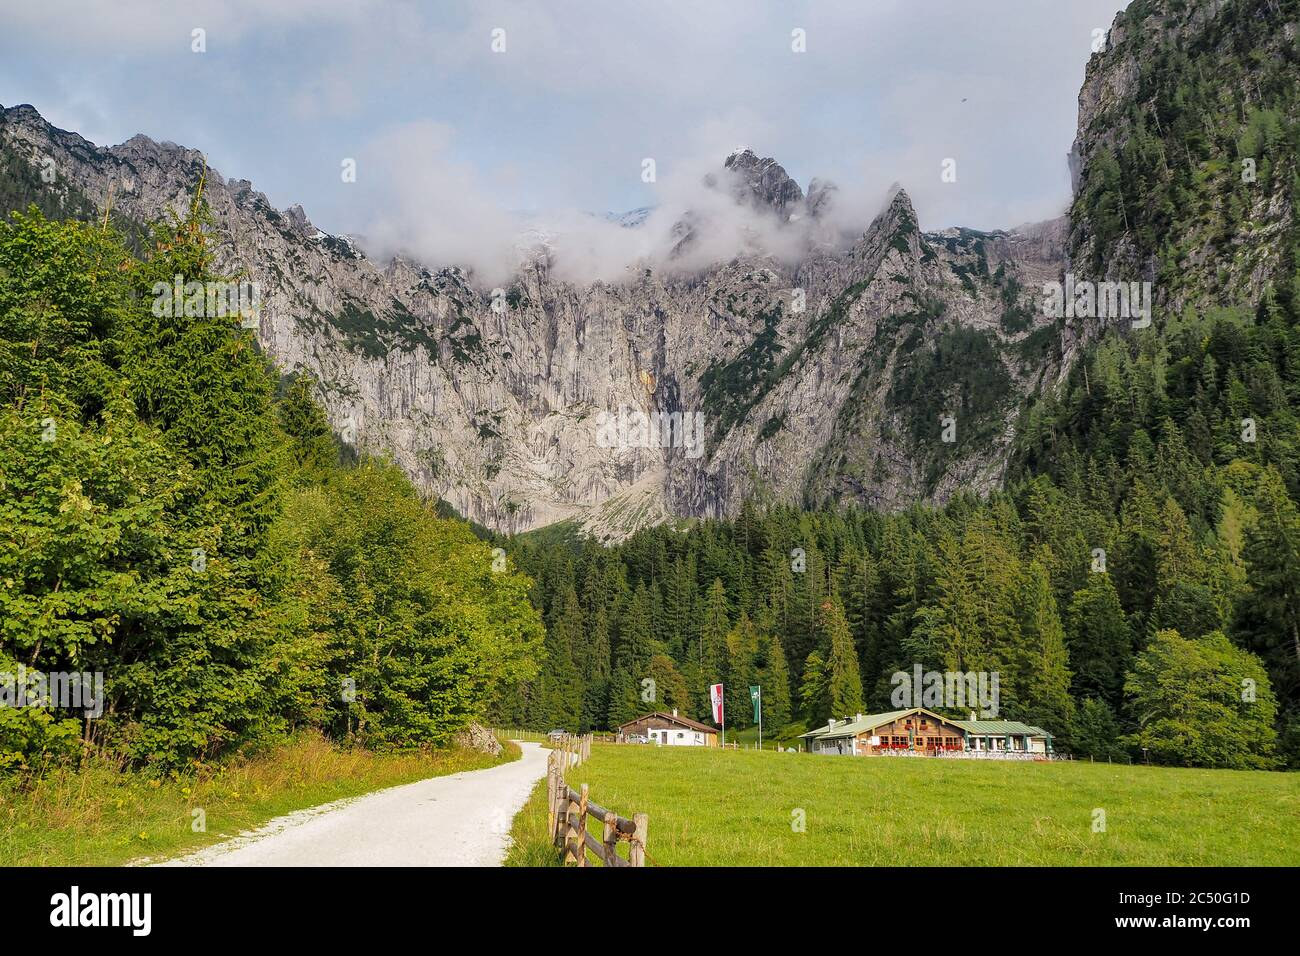 mountain Hoher Goell with its west face and Pflughoerndl to the right from Scharitzkehl Alm at Berchtesgaden national park, Bavaria, Germany Stock Photo